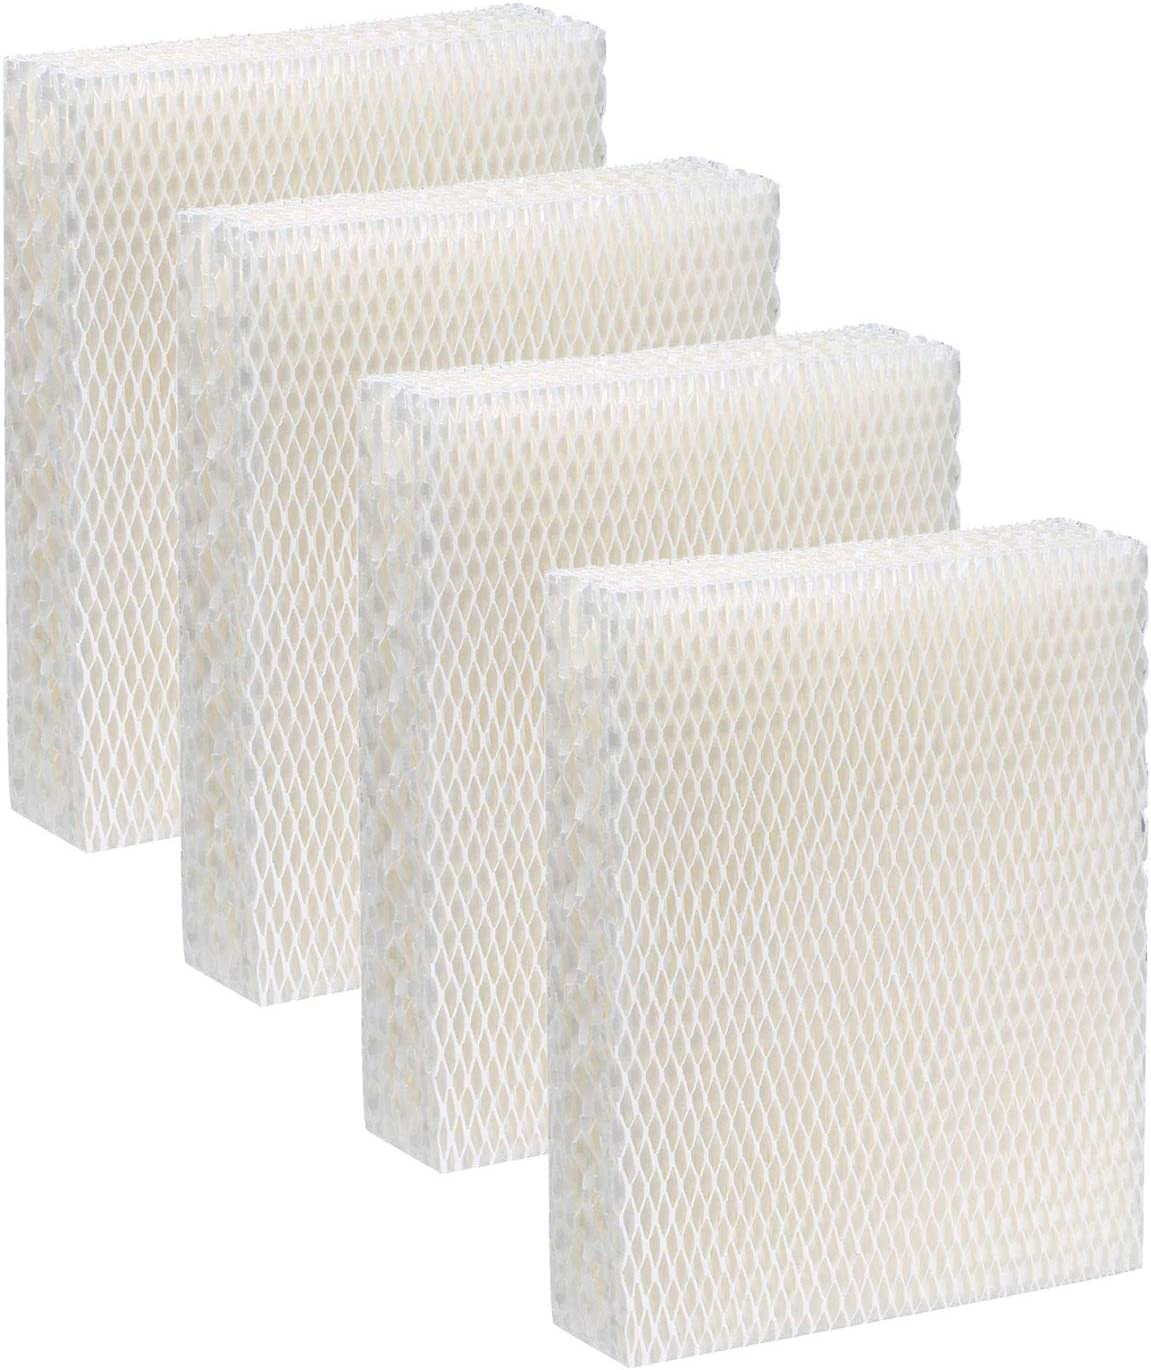 IOYIJOI Humidifier Replacement Filter T for Honeywell Top Fill Humidifier HEV615 and HEV620 Humidifier Wicks, Compatible with Part # HFT600, HFT600T,